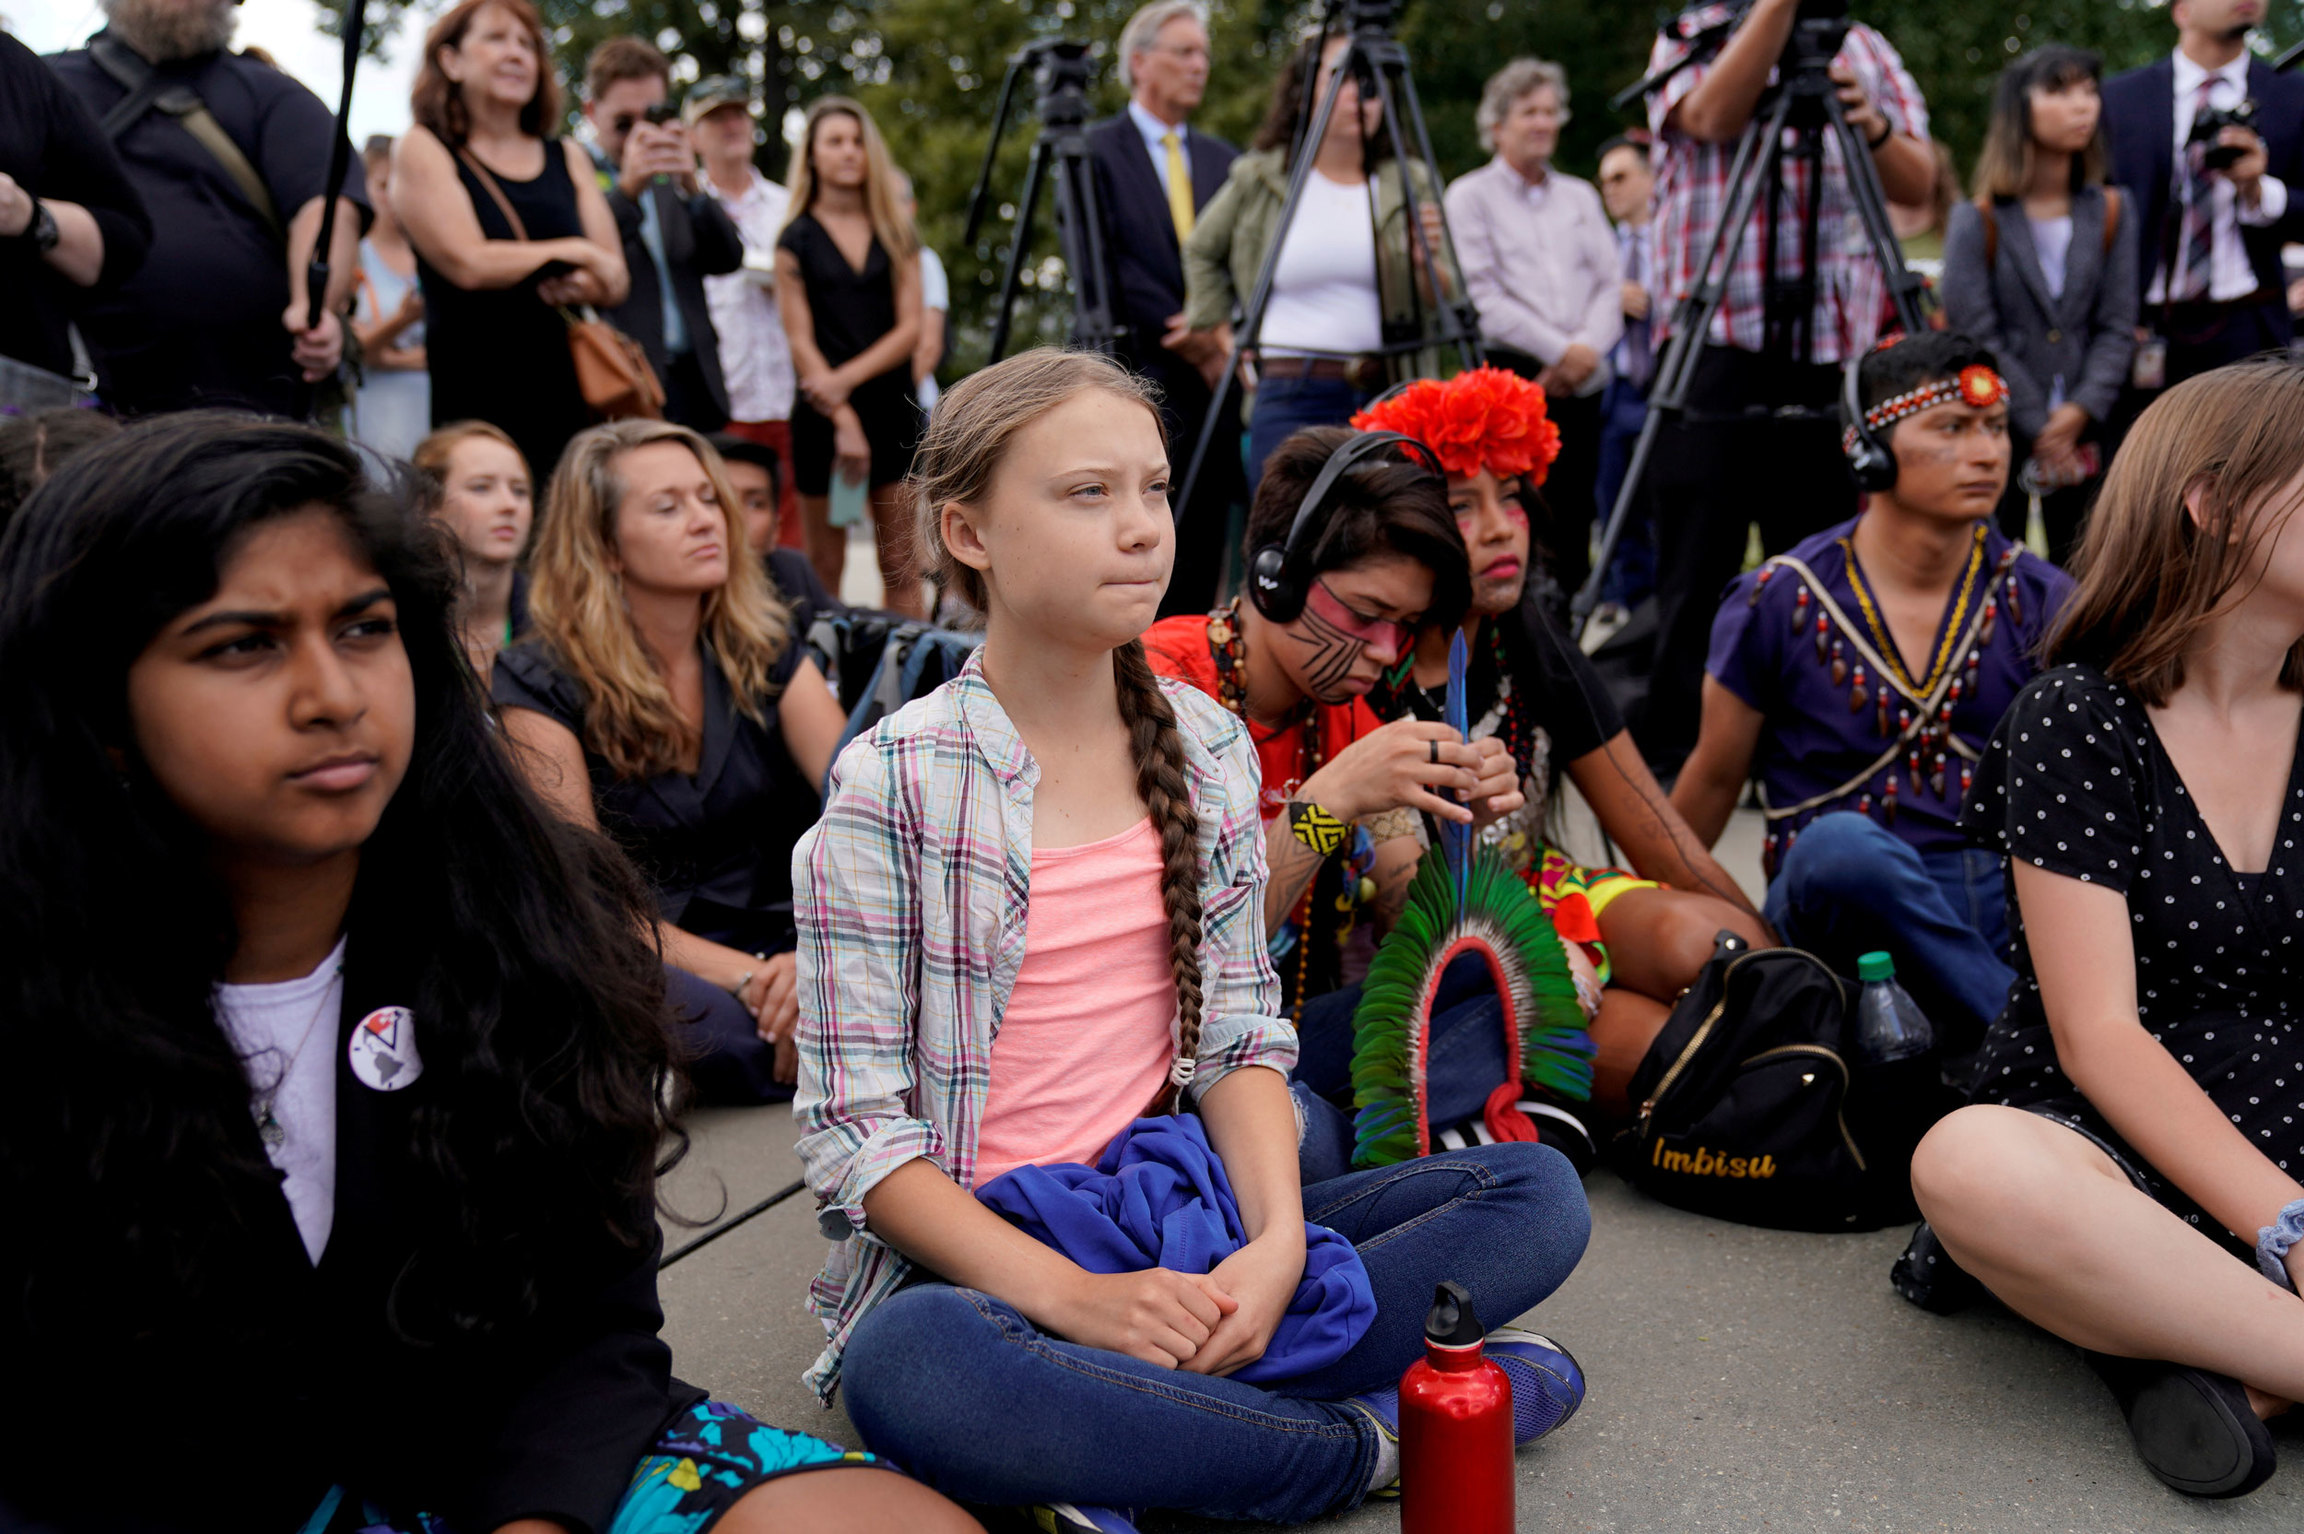 Swedish climate activist Greta Thunberg is shown sitting on the ground with her legs crossed and with a red water bottle.